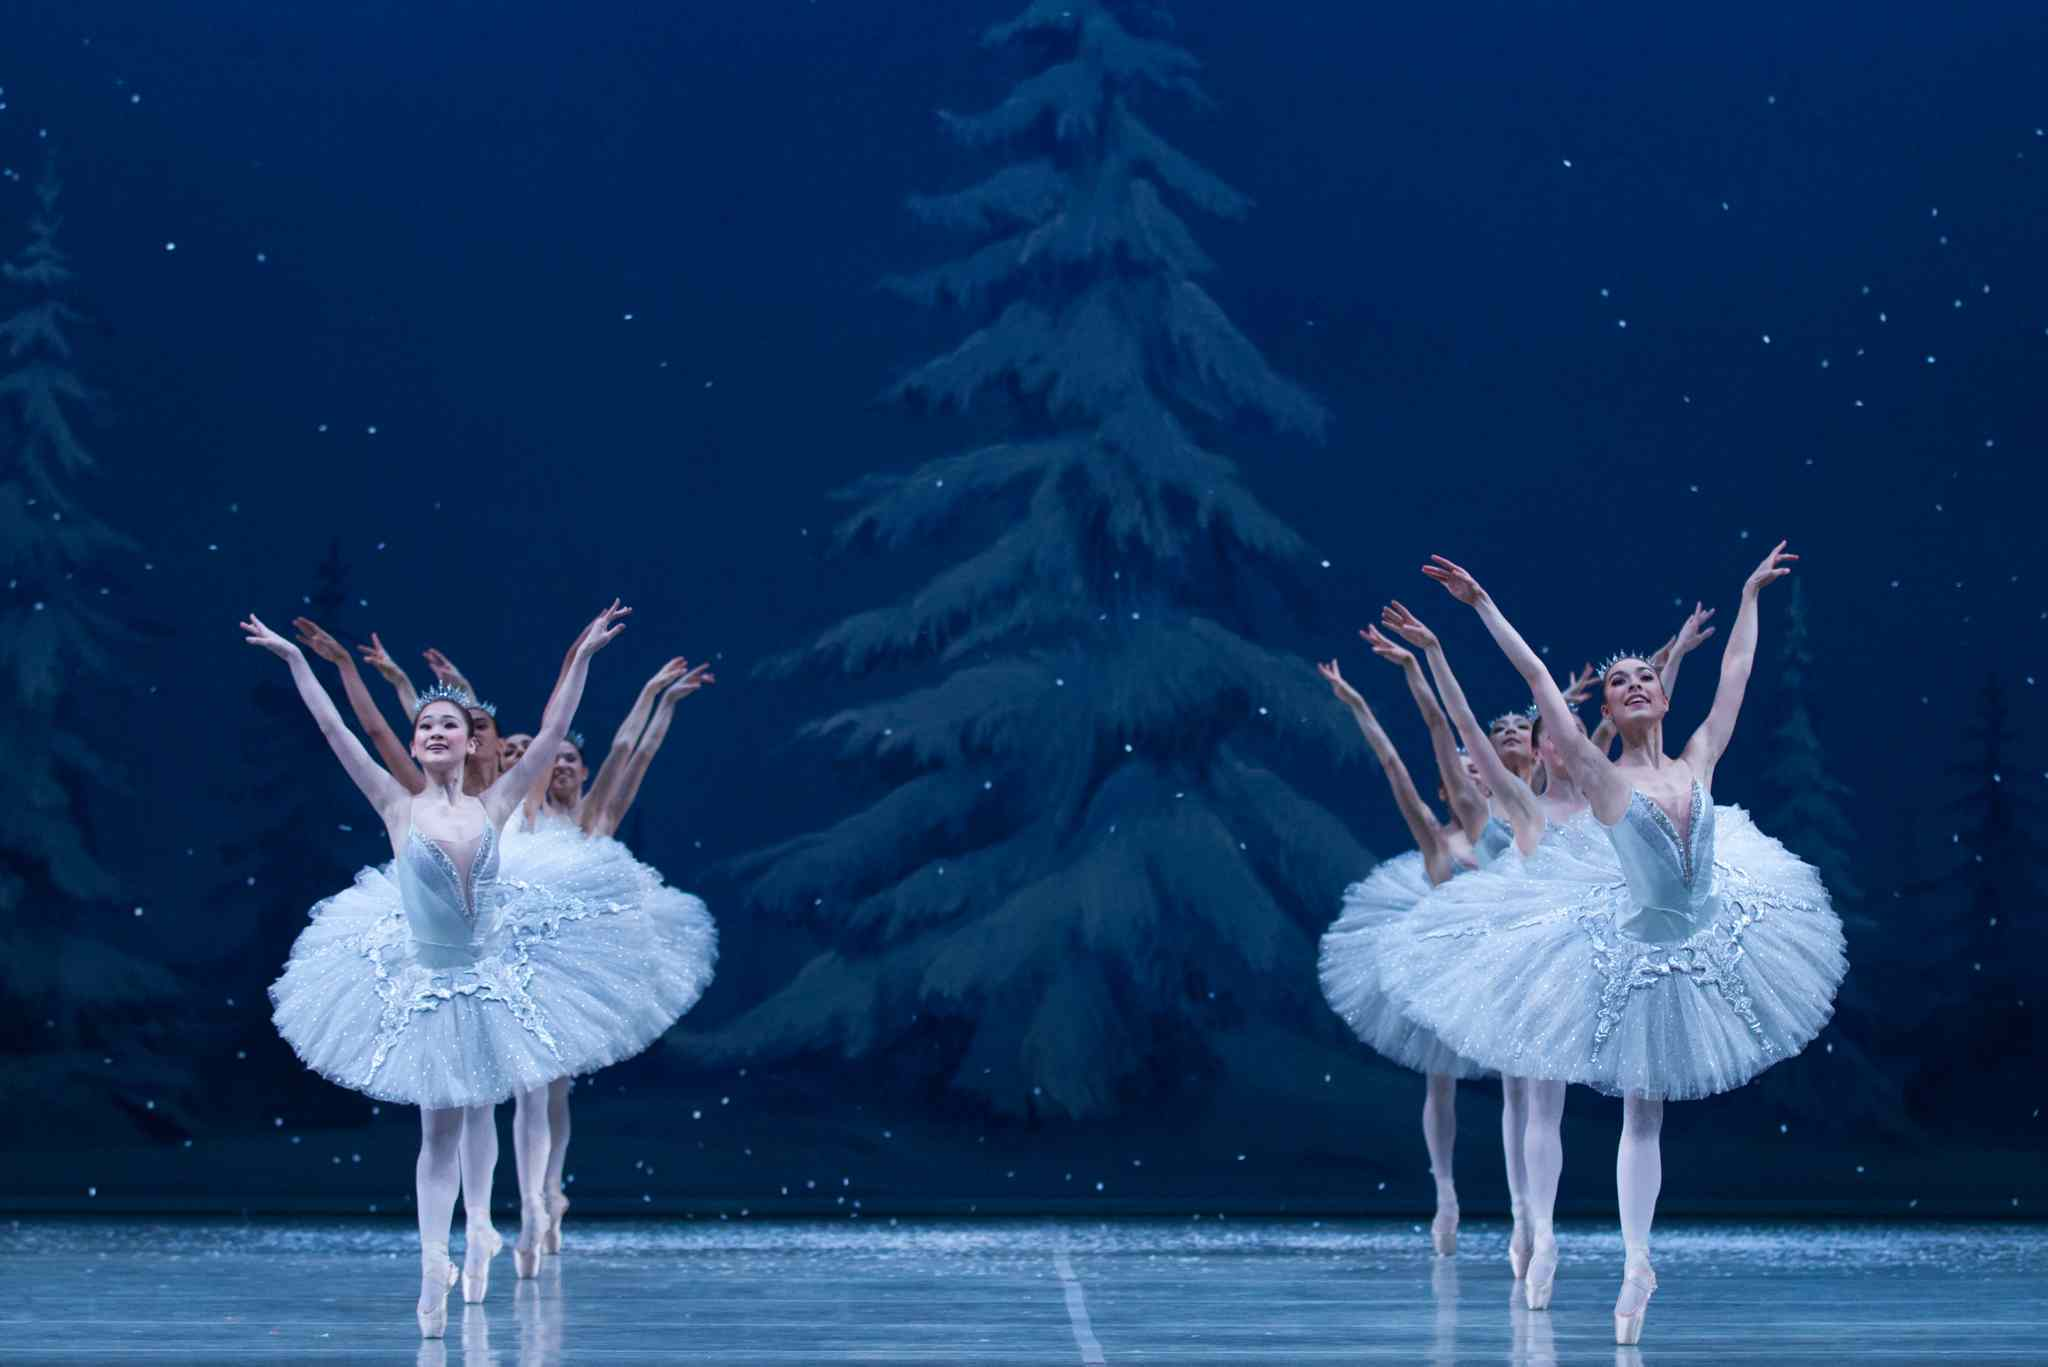 The Nutcracker runs through Monday.